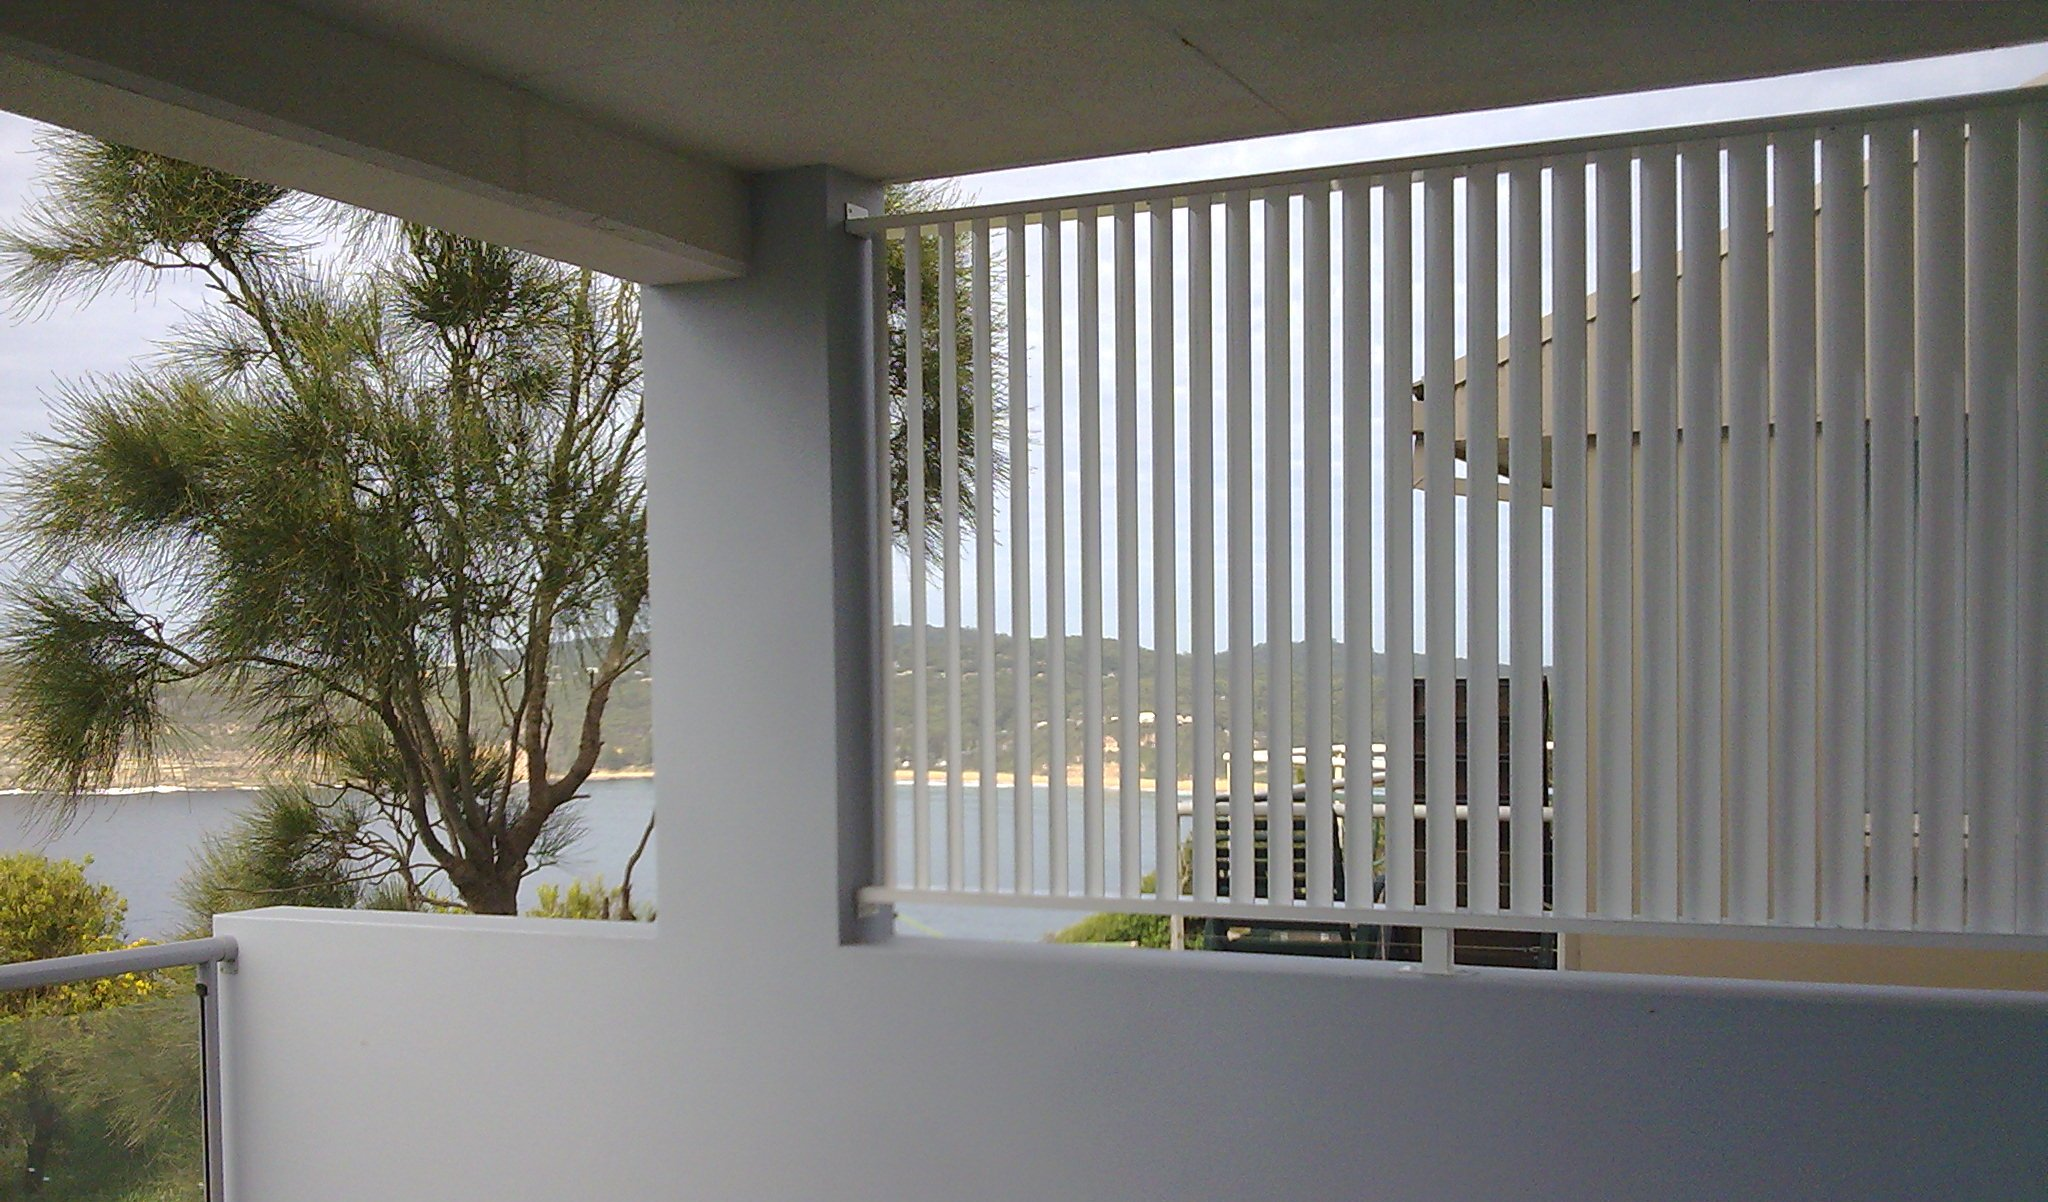 Vertical ScreenAluminium Plantation Shutters and Screens